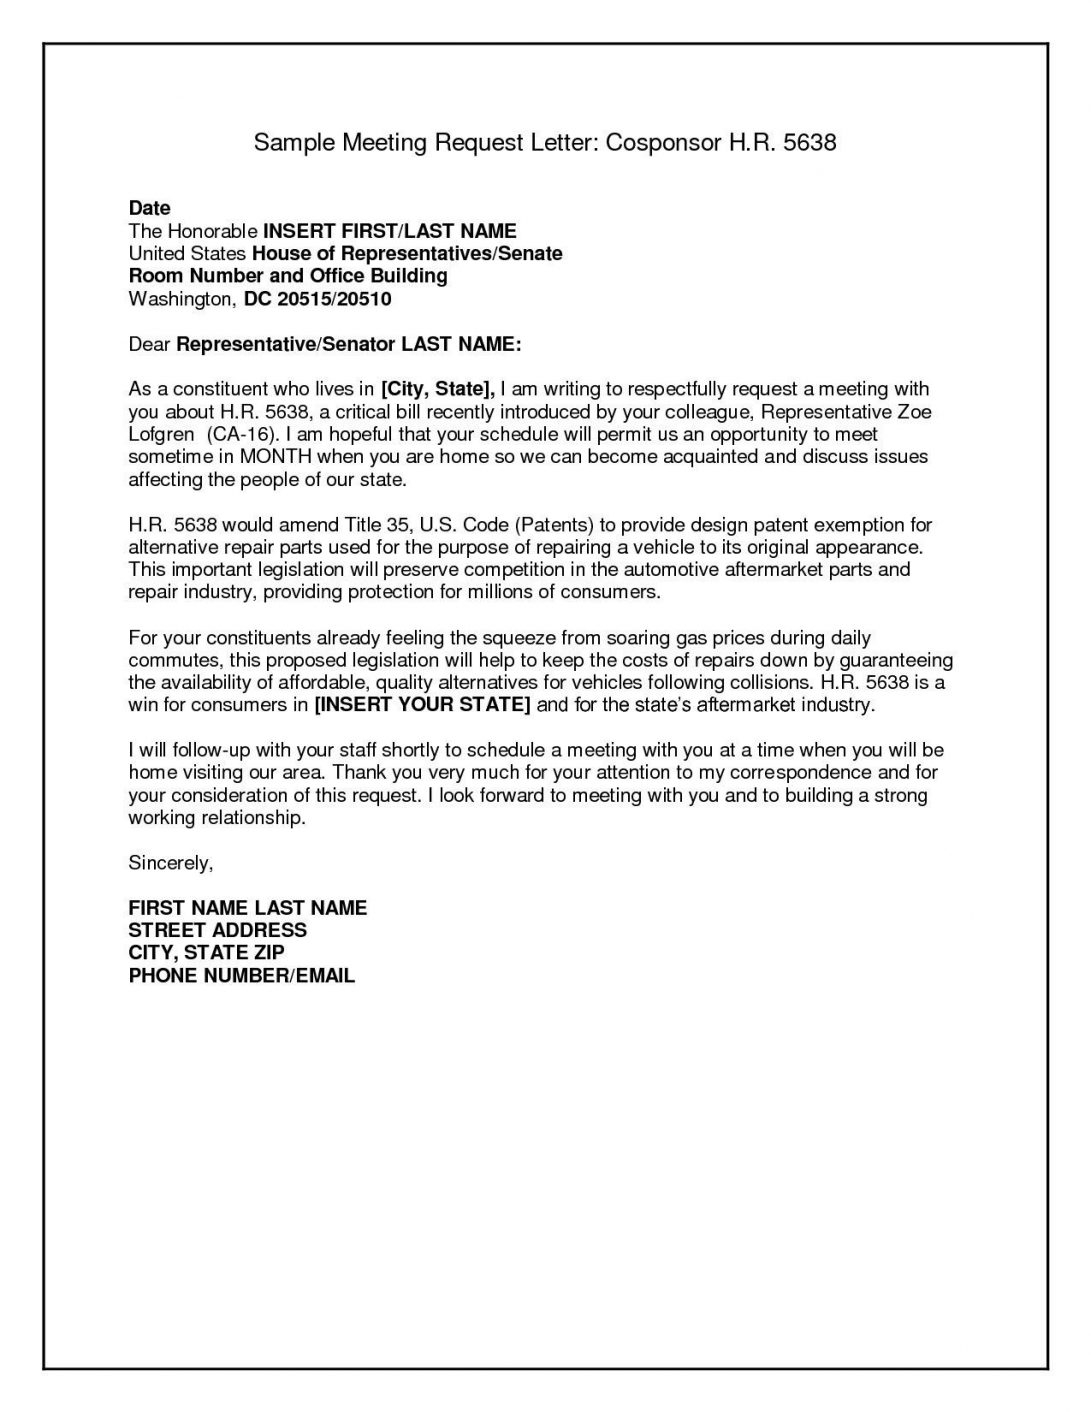 letter format for a meeting request sample business letter format for asking bill